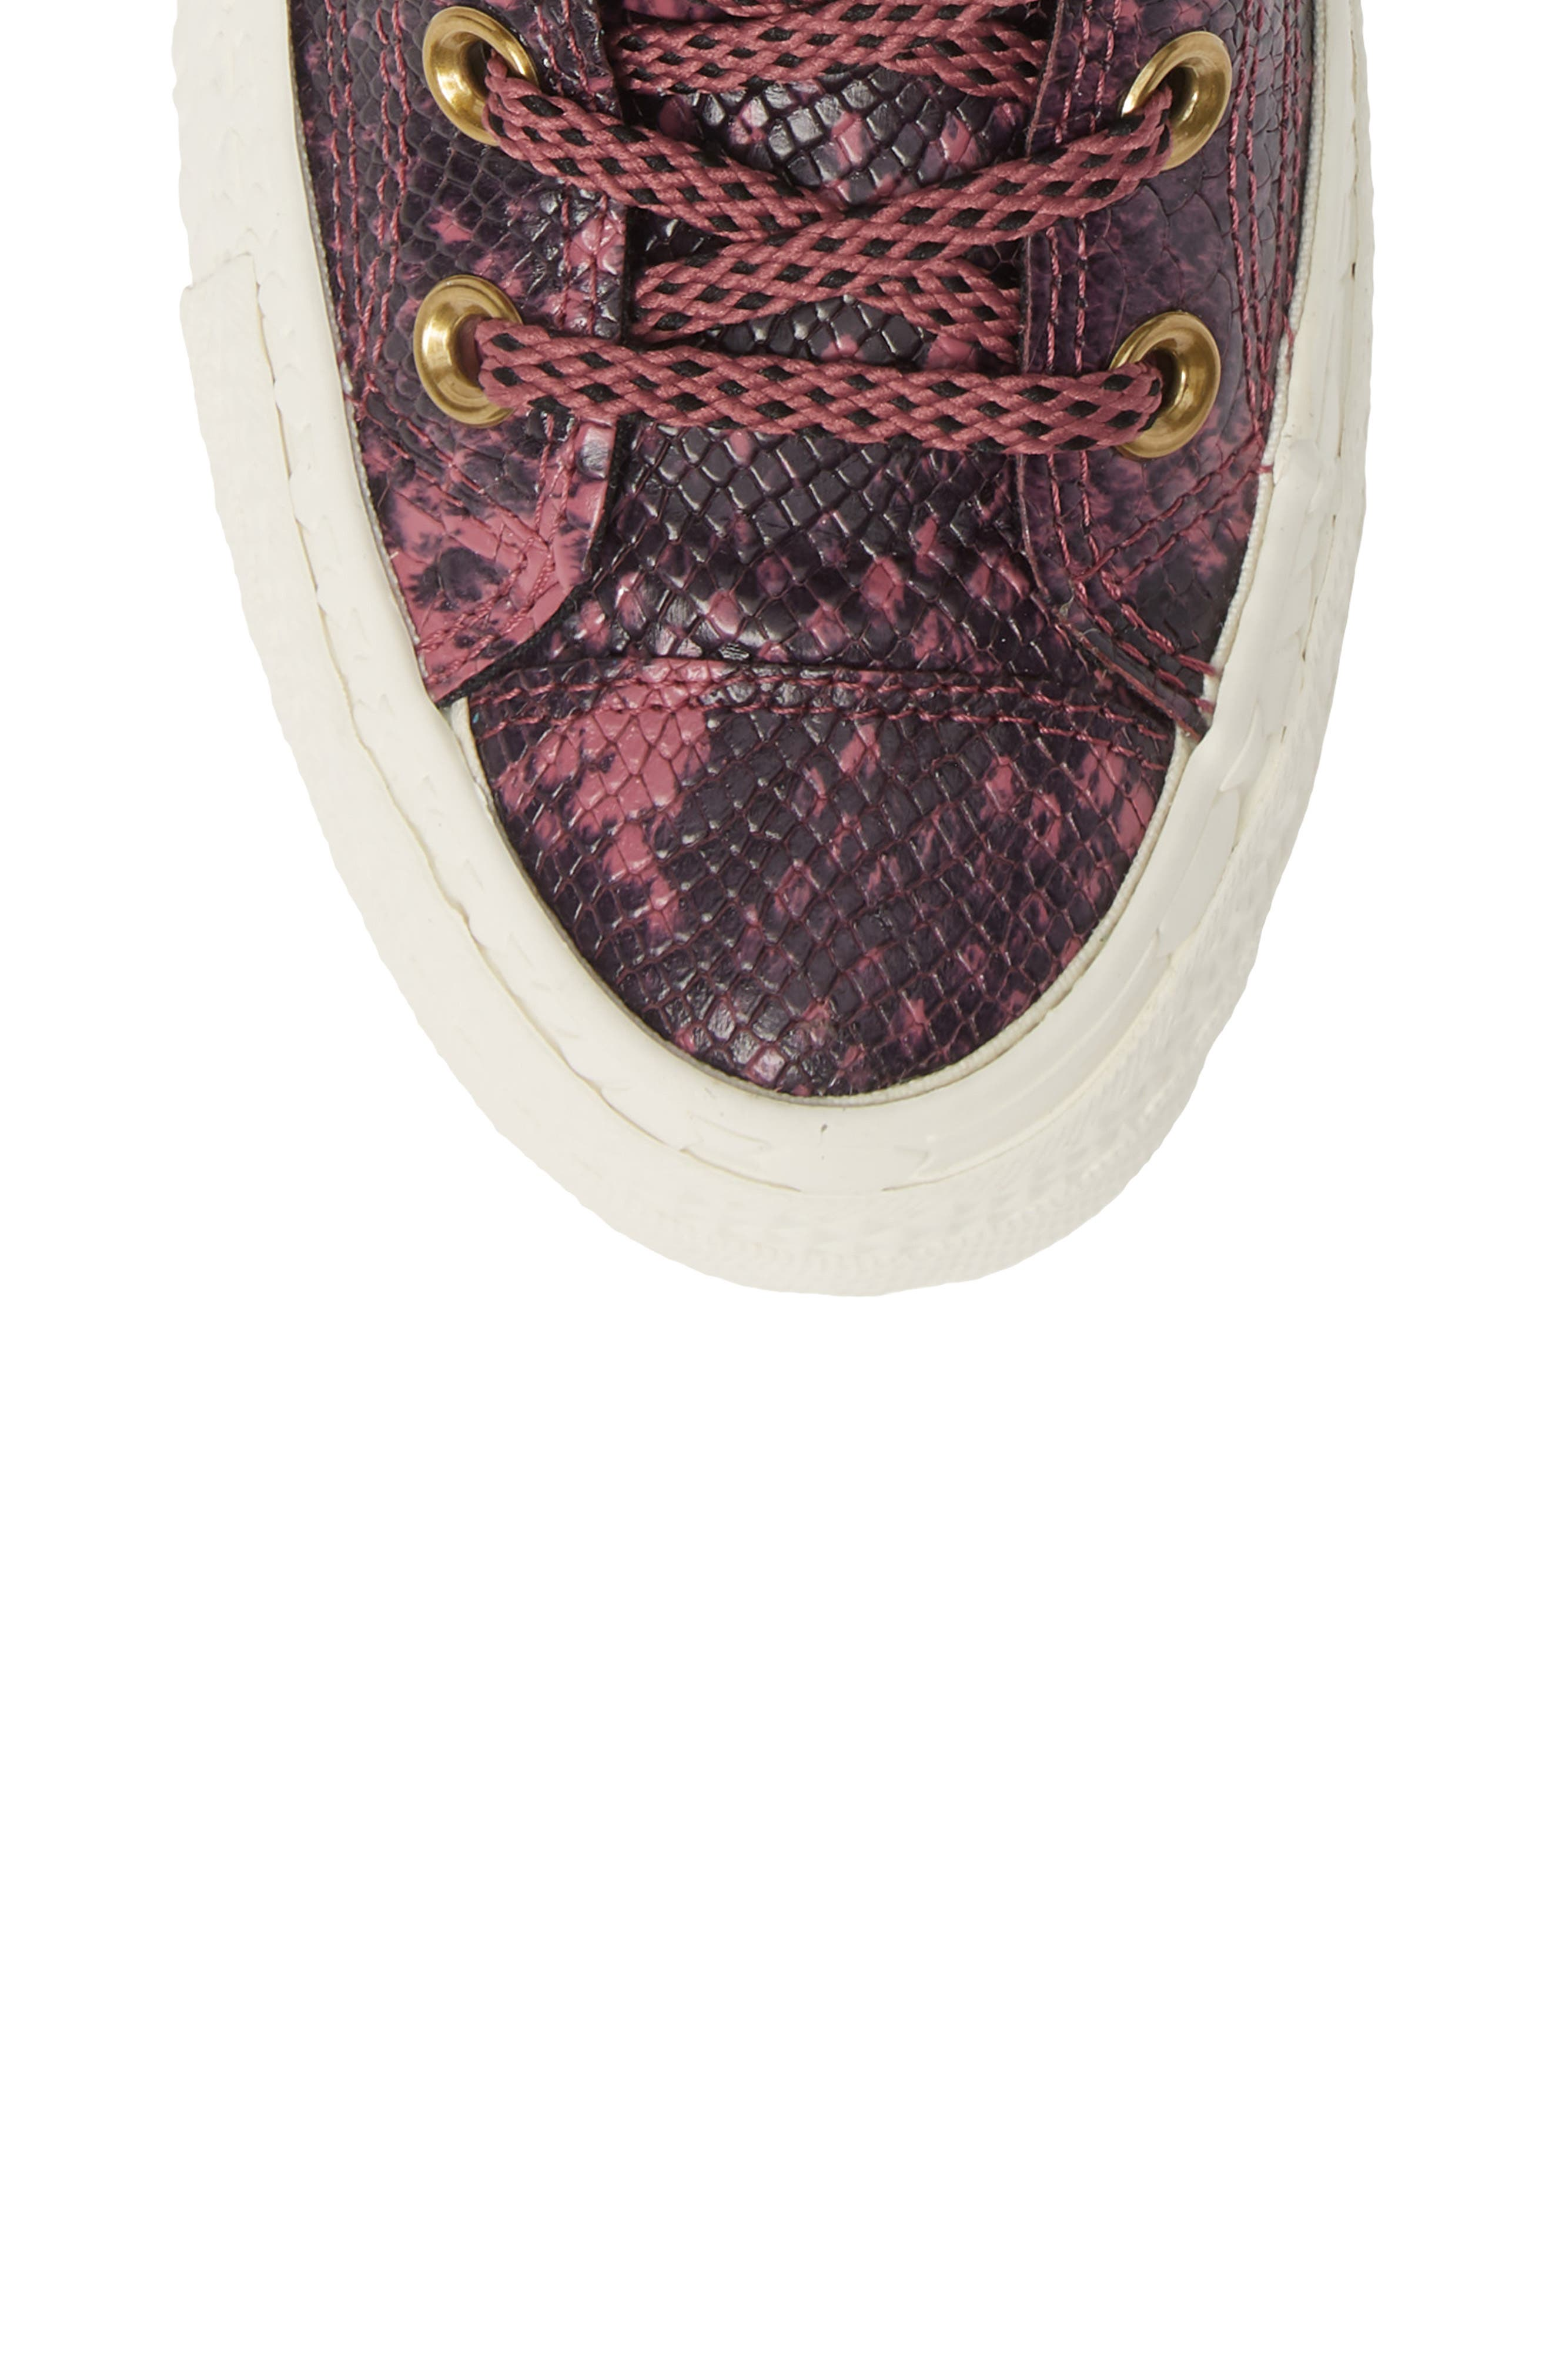 Chuck Taylor<sup>®</sup> All Star<sup>®</sup> CT 70 Reptile High Top Sneaker,                             Alternate thumbnail 5, color,                             VINTAGE WINE LEATHER